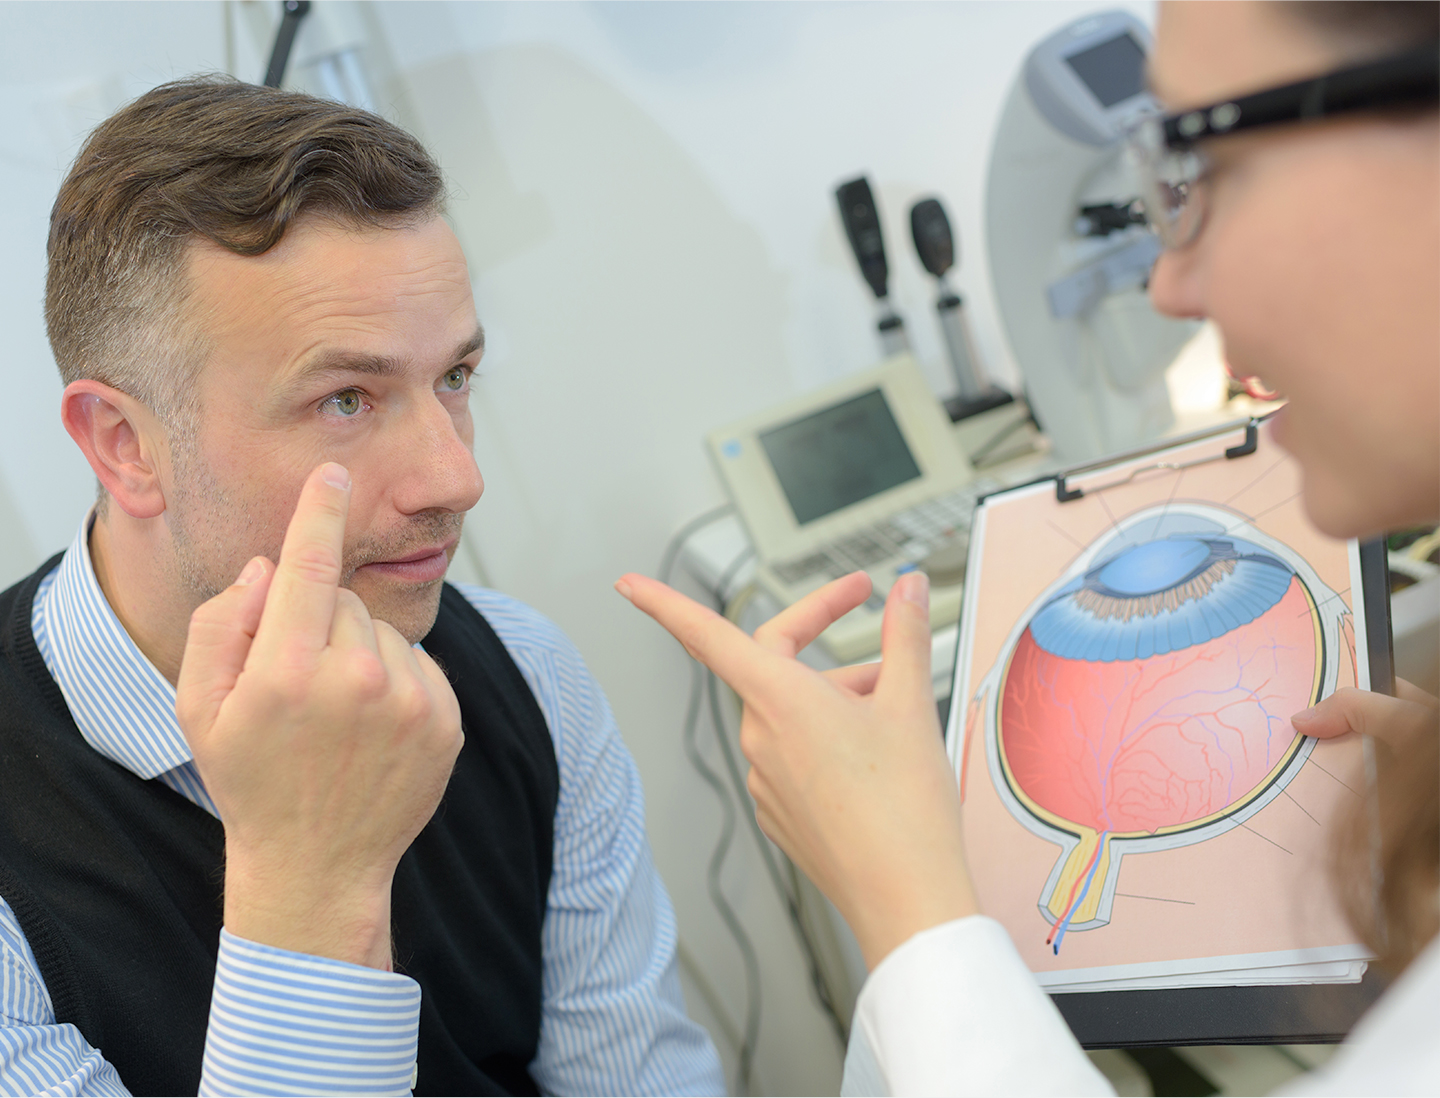 Image of male patient discussing eyes with female doctor.